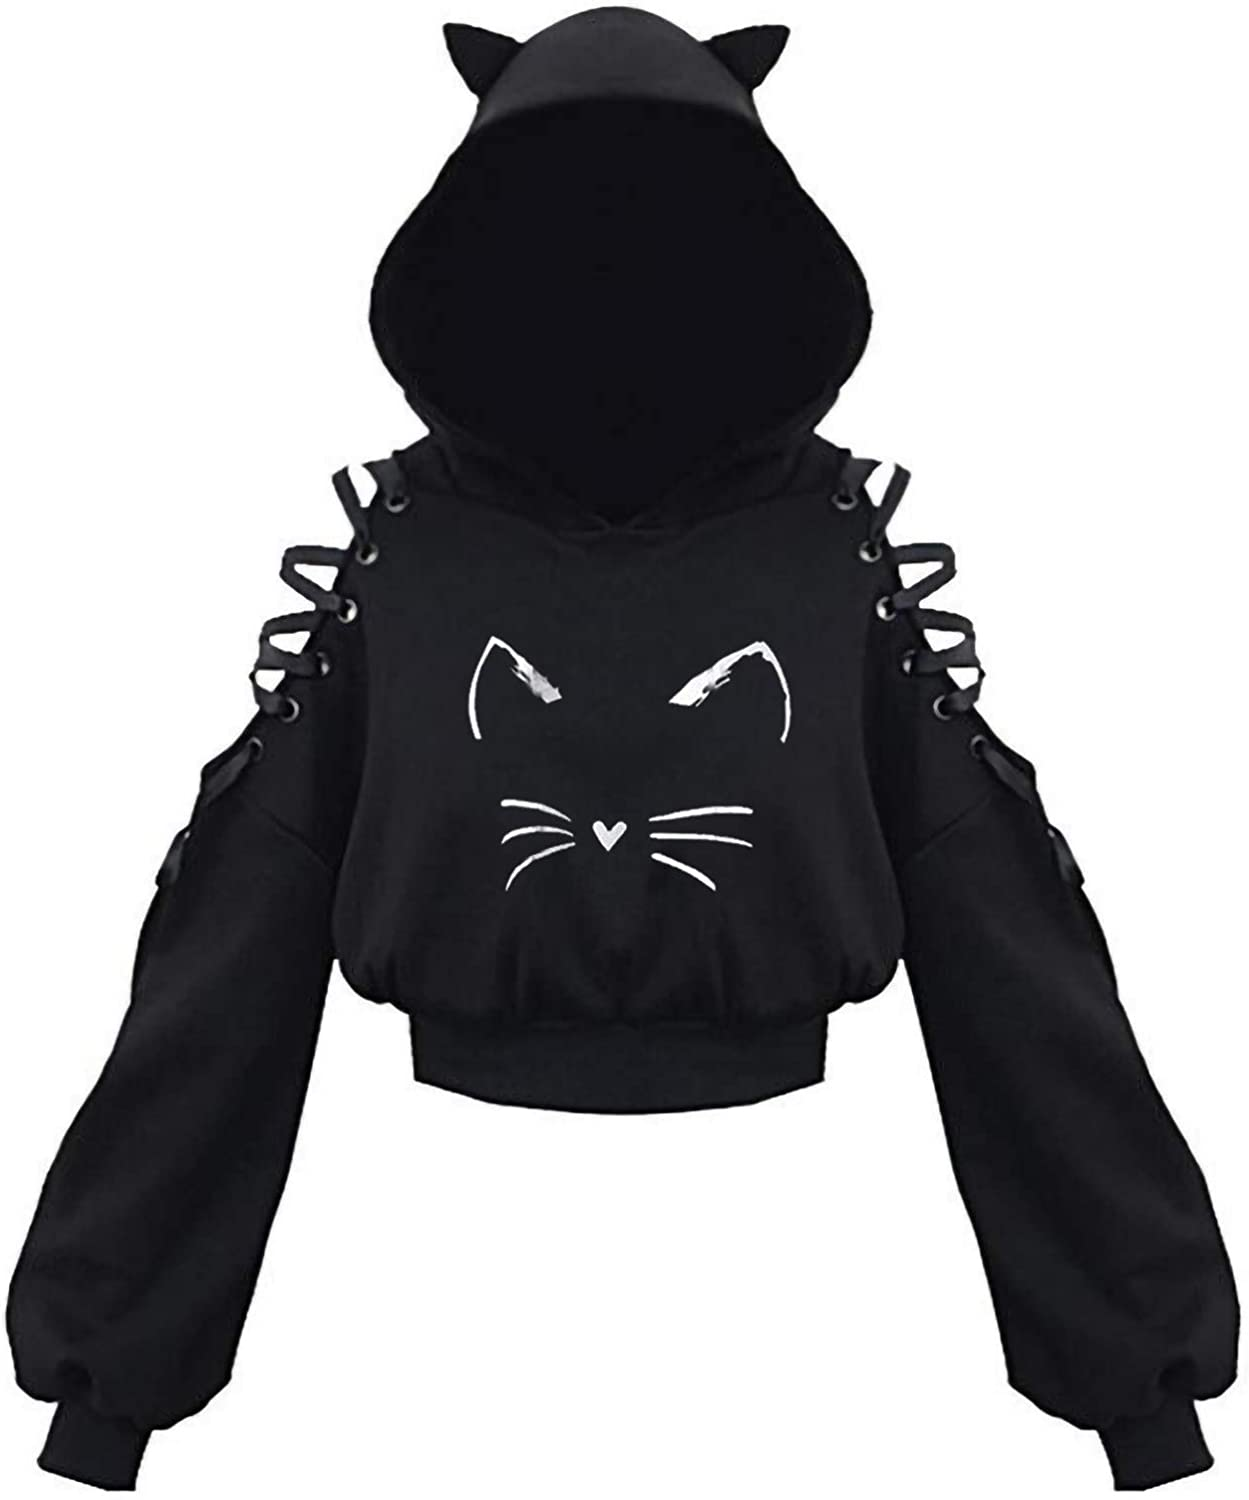 Cute Summer Tops for Women Cat Ear Hoodie Pullover Lace-up Cold Shoulder Lantern Sleeves Shirts Hooded Sweatshirt